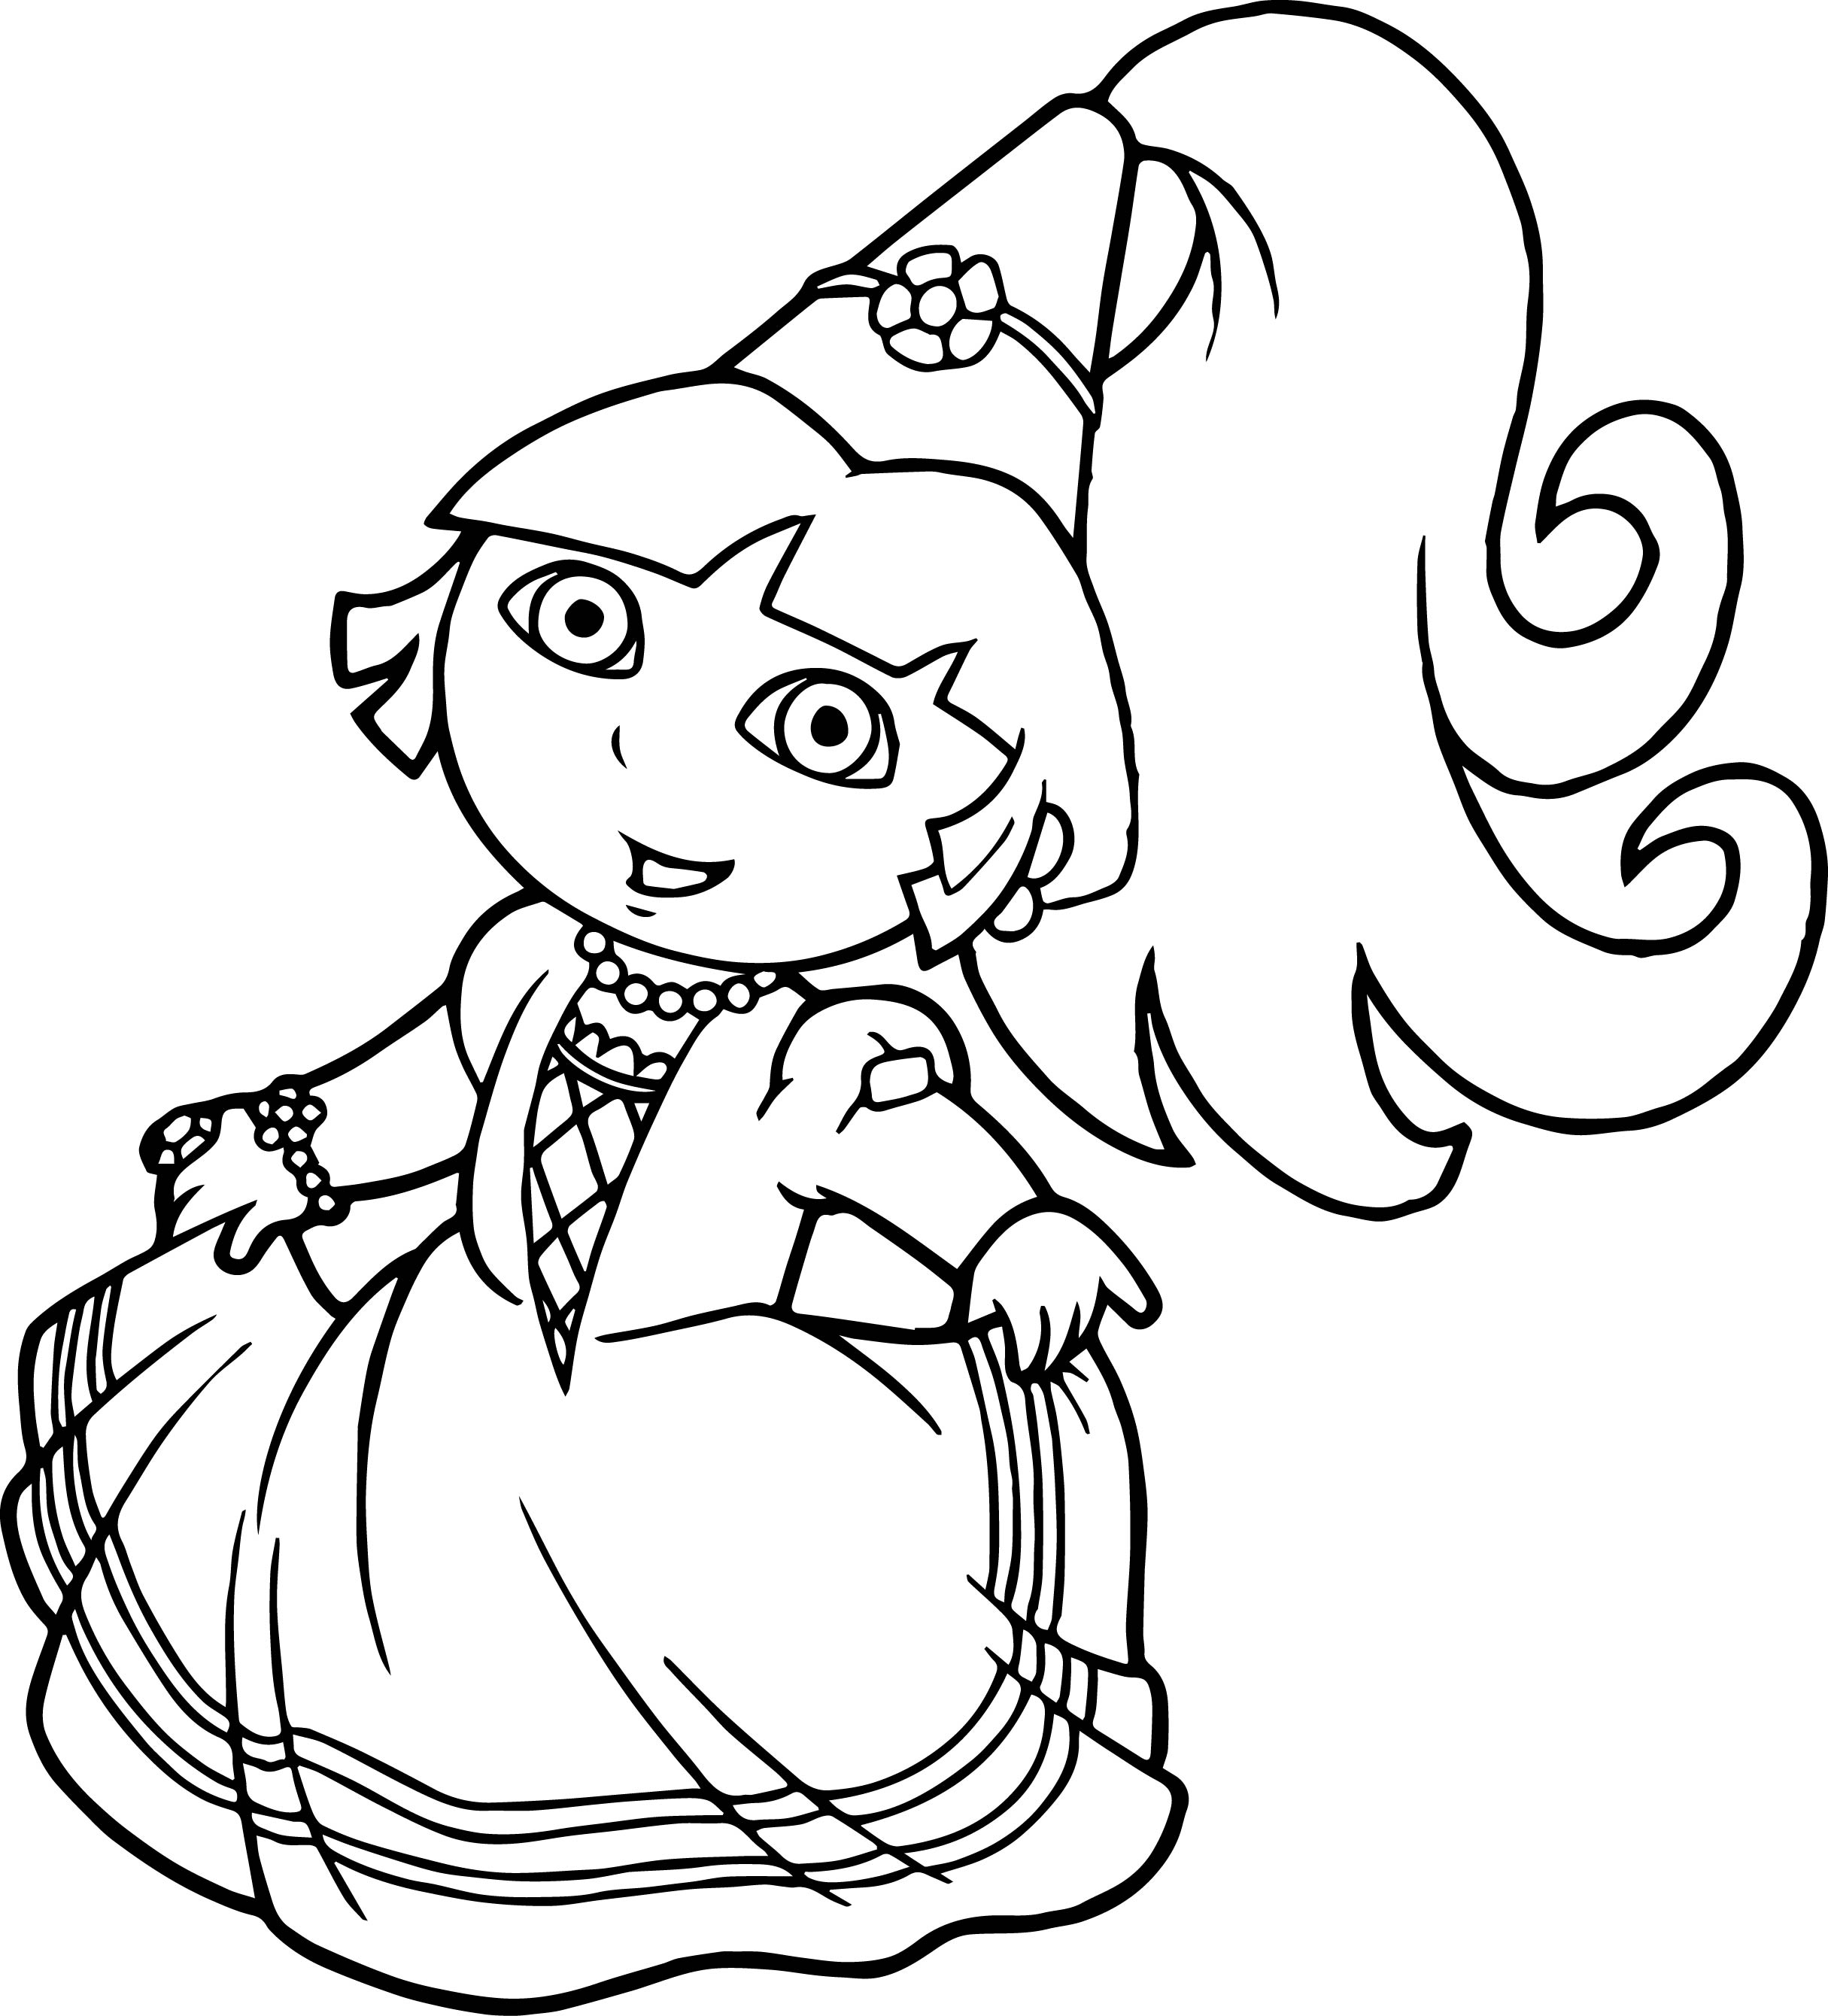 Princess dora the explorer coloring page for Dora black and white coloring pages